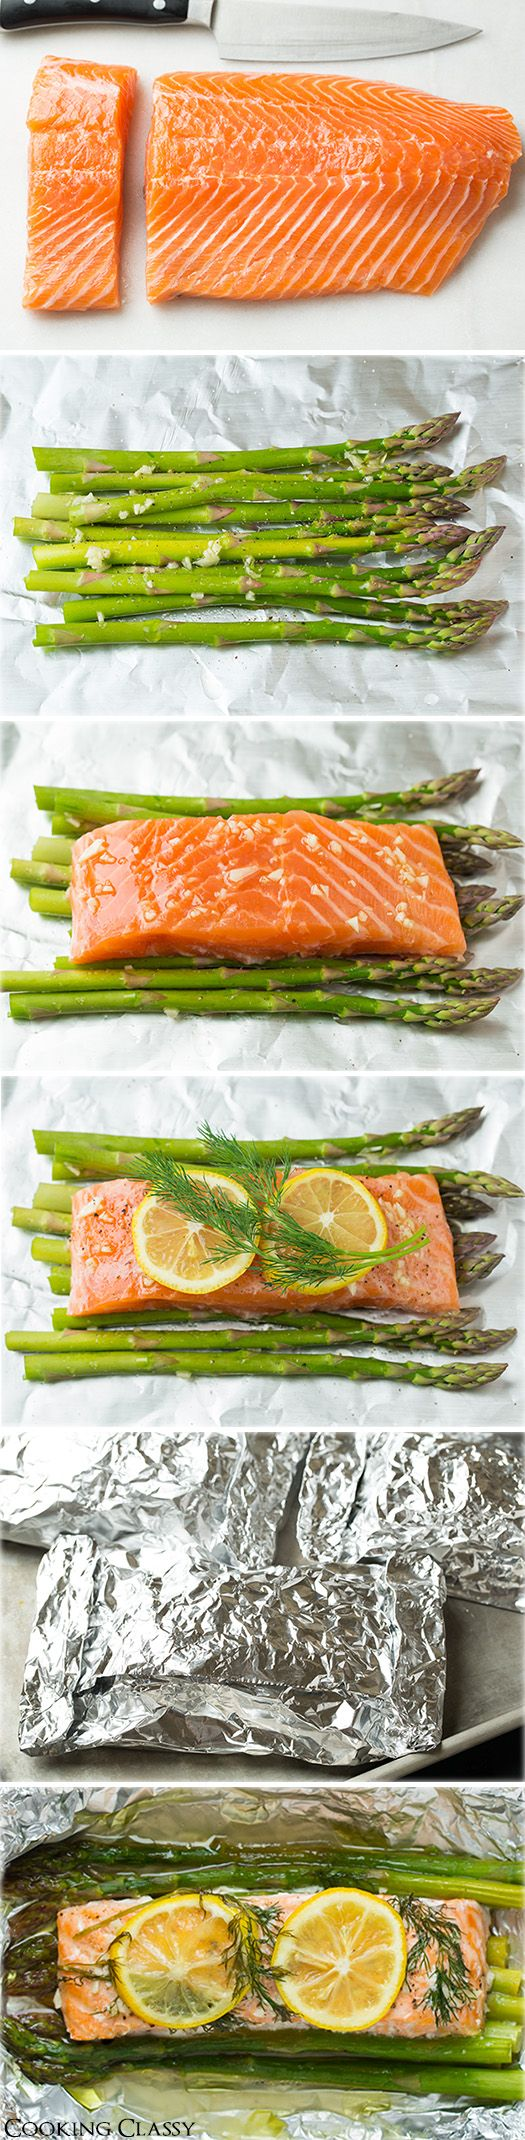 Baked salmon and asparagus in foil recipe omega 3 for Fish foil packets oven